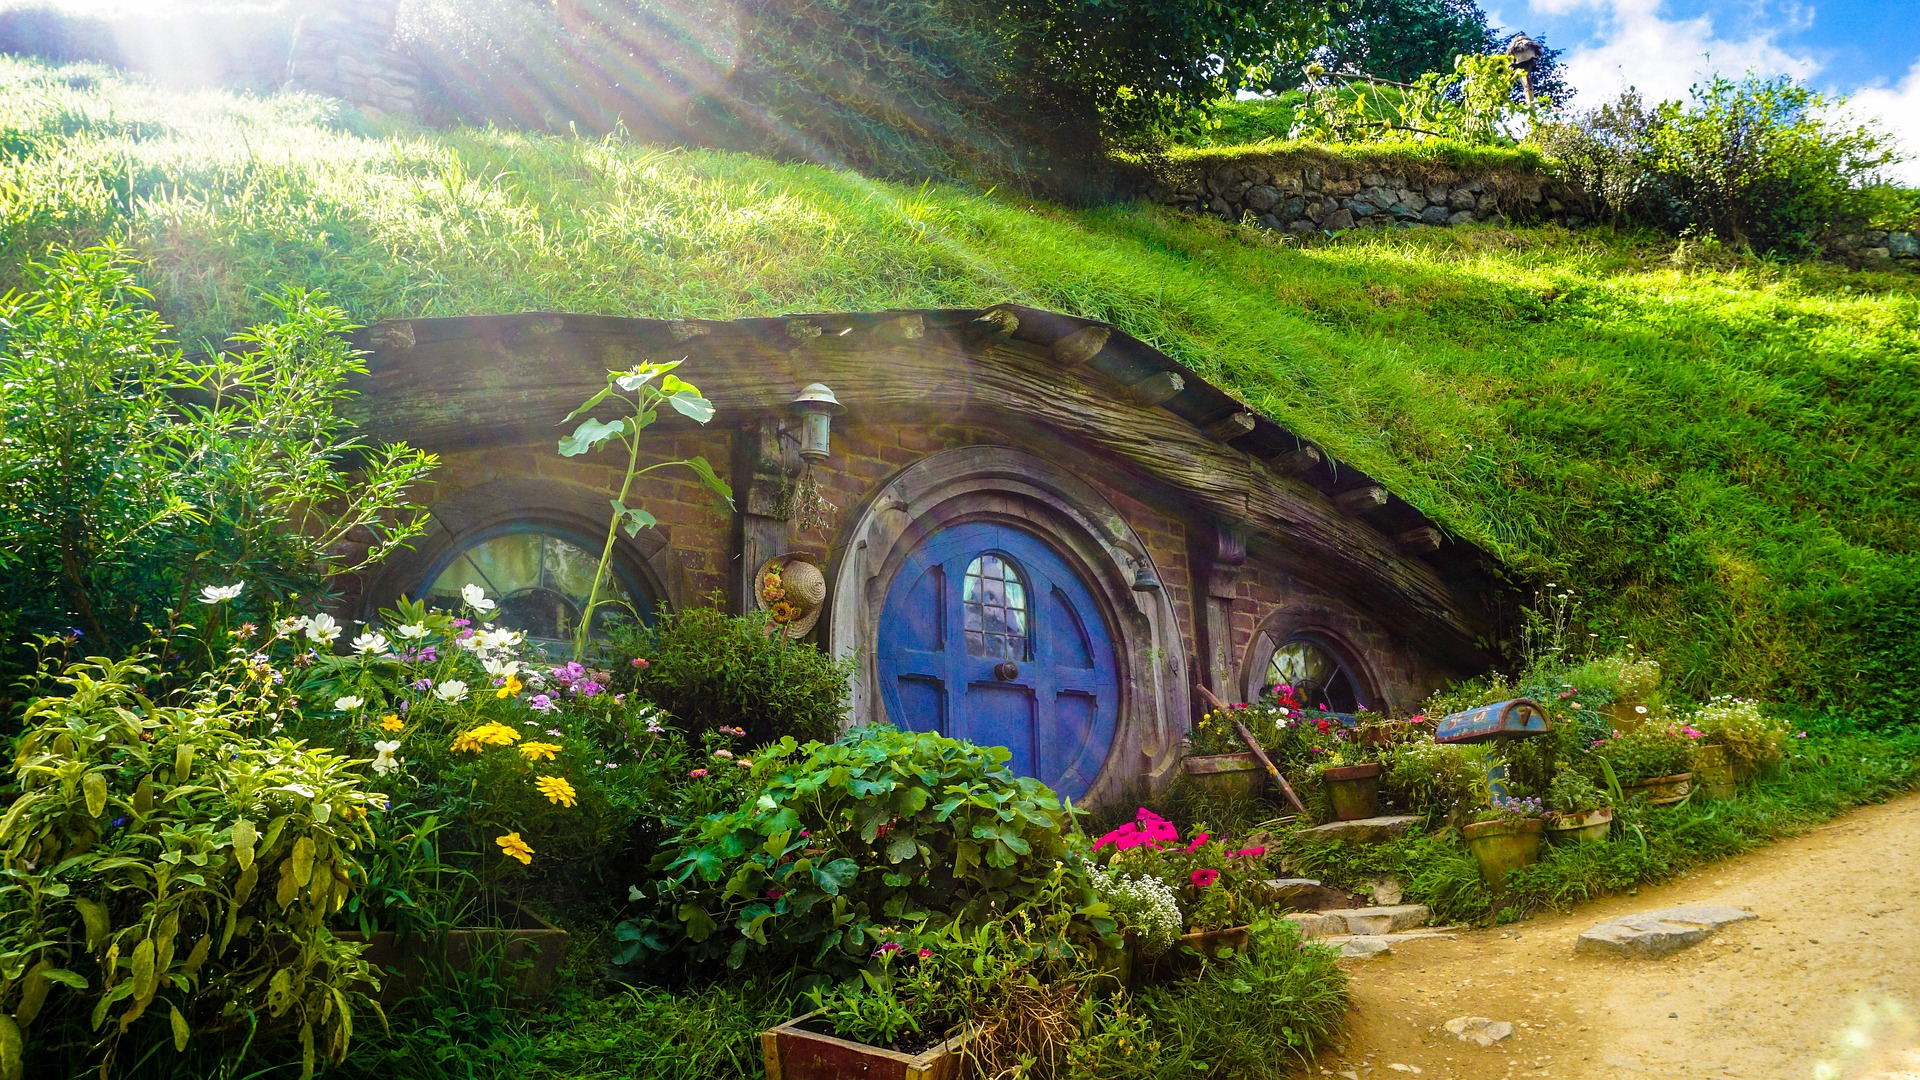 Hobbit_house_New_Zealand_CC0.jpg?1548422418